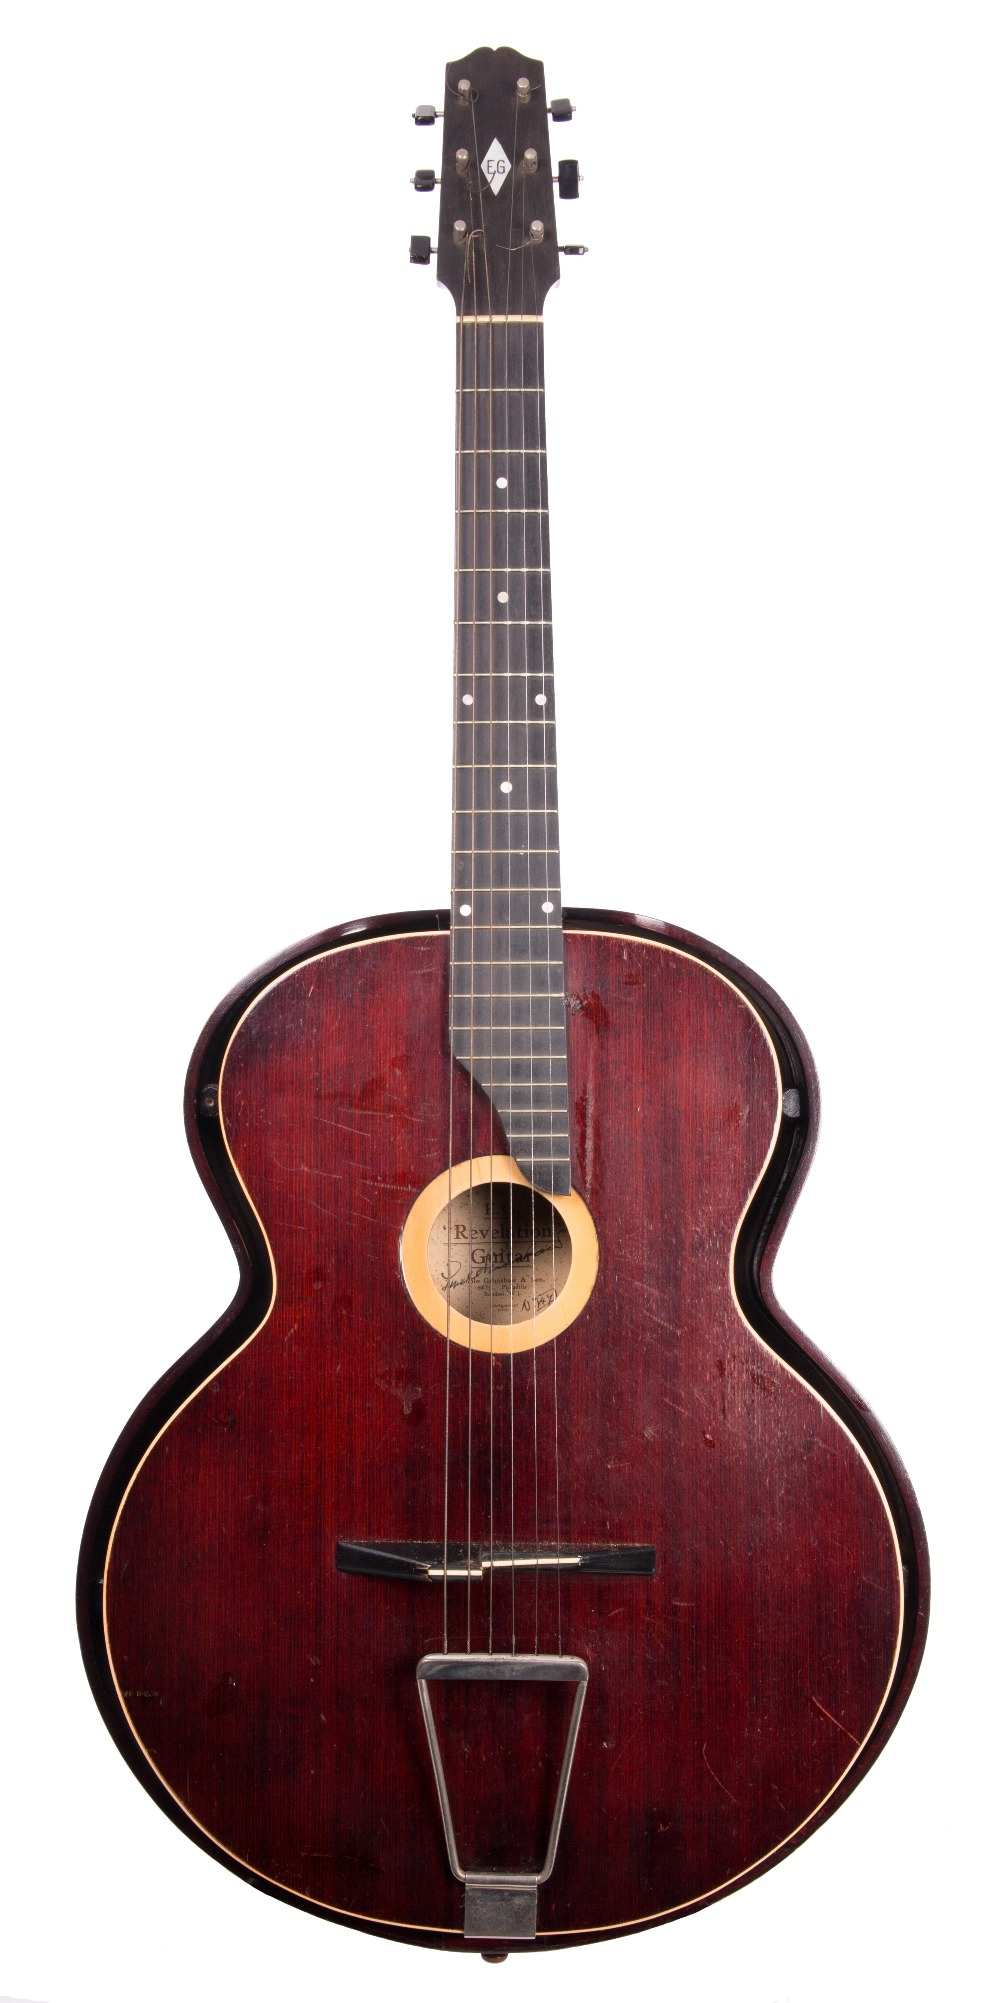 Lot 77 - Emile Grimshaw Revelation acoustic guitar, circa 1933, made in England, no. 47; Finish: wine red,